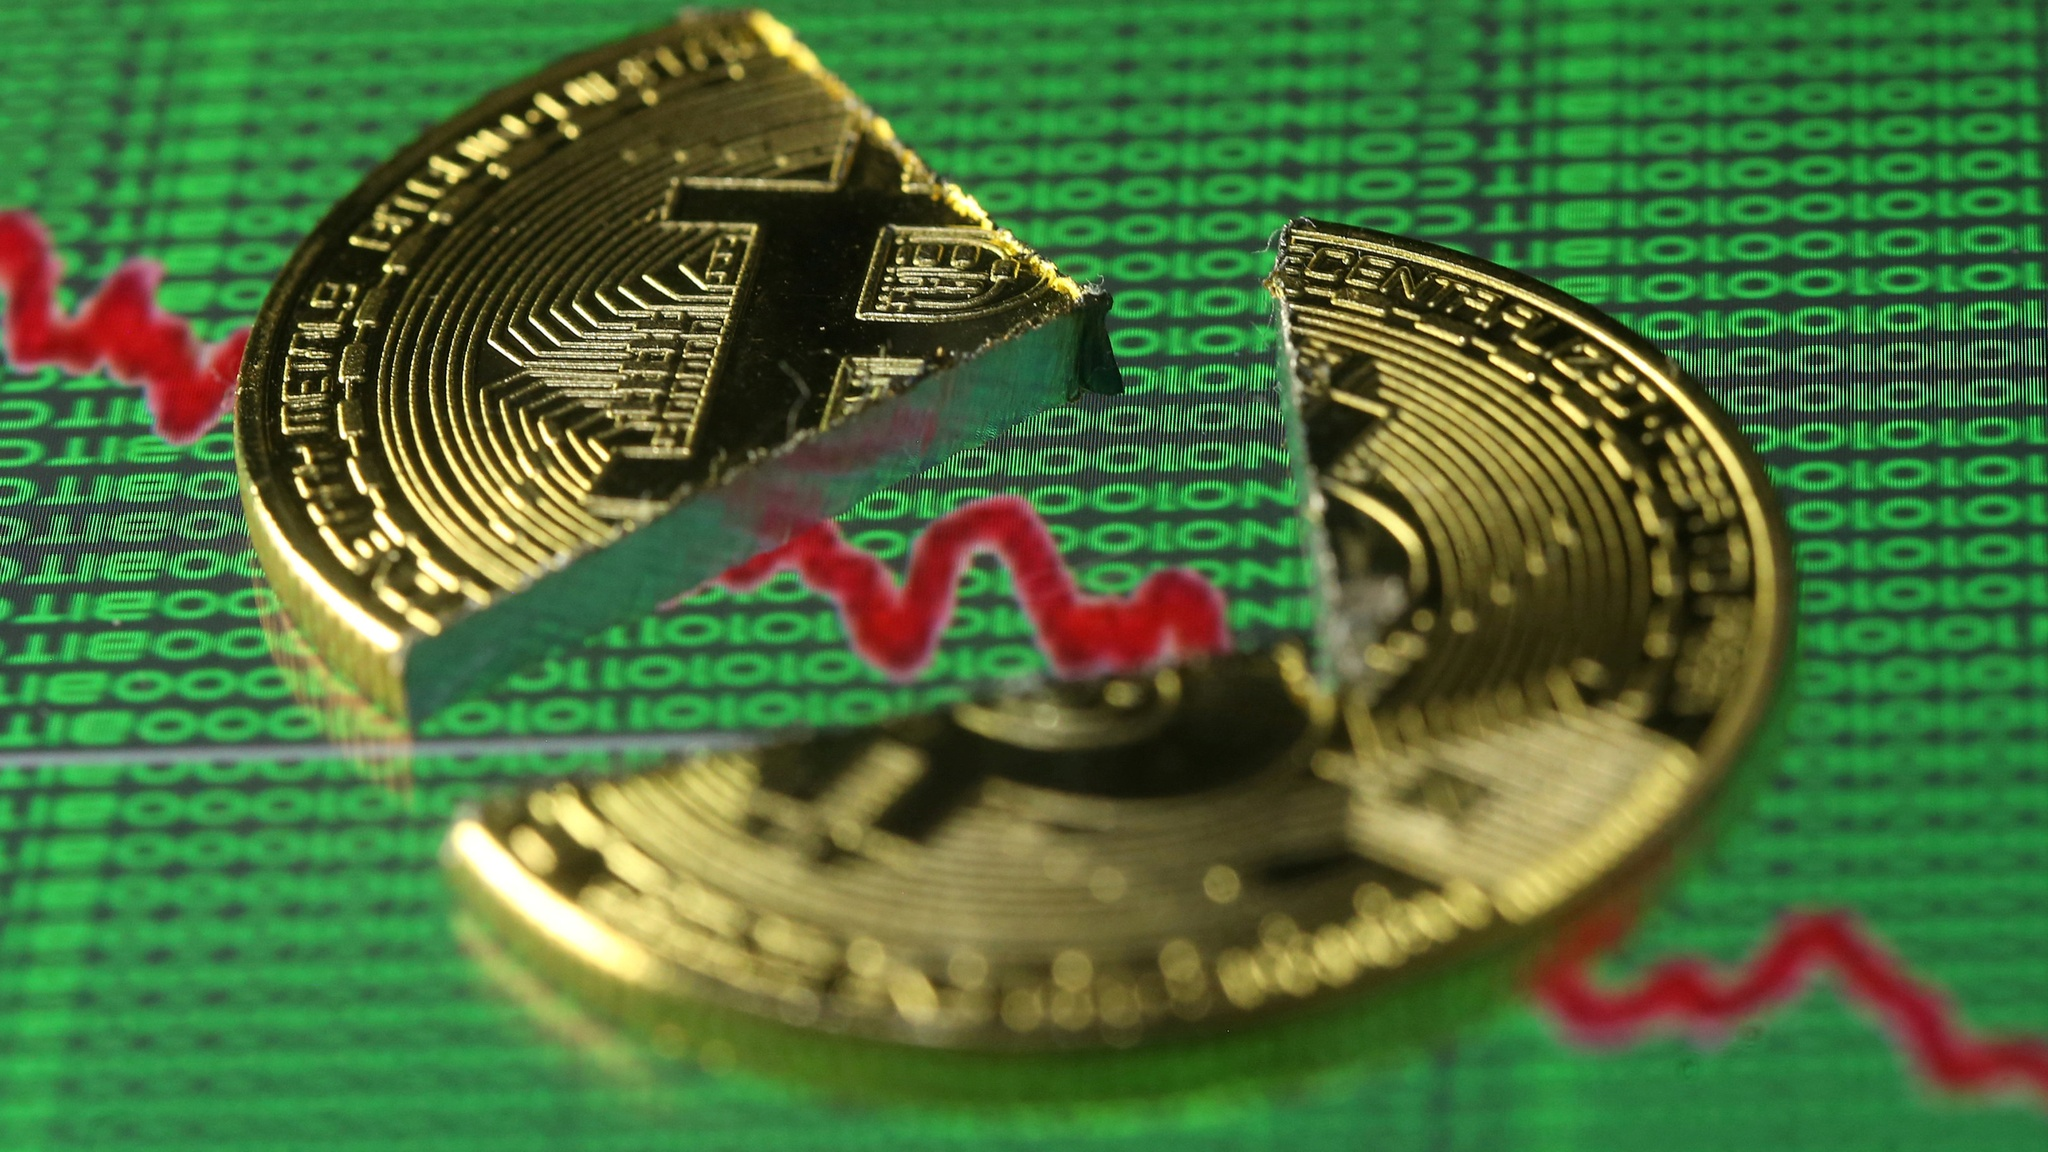 Bit-pop: Bitcoin sinks to $8,300, down over 40% so far this year